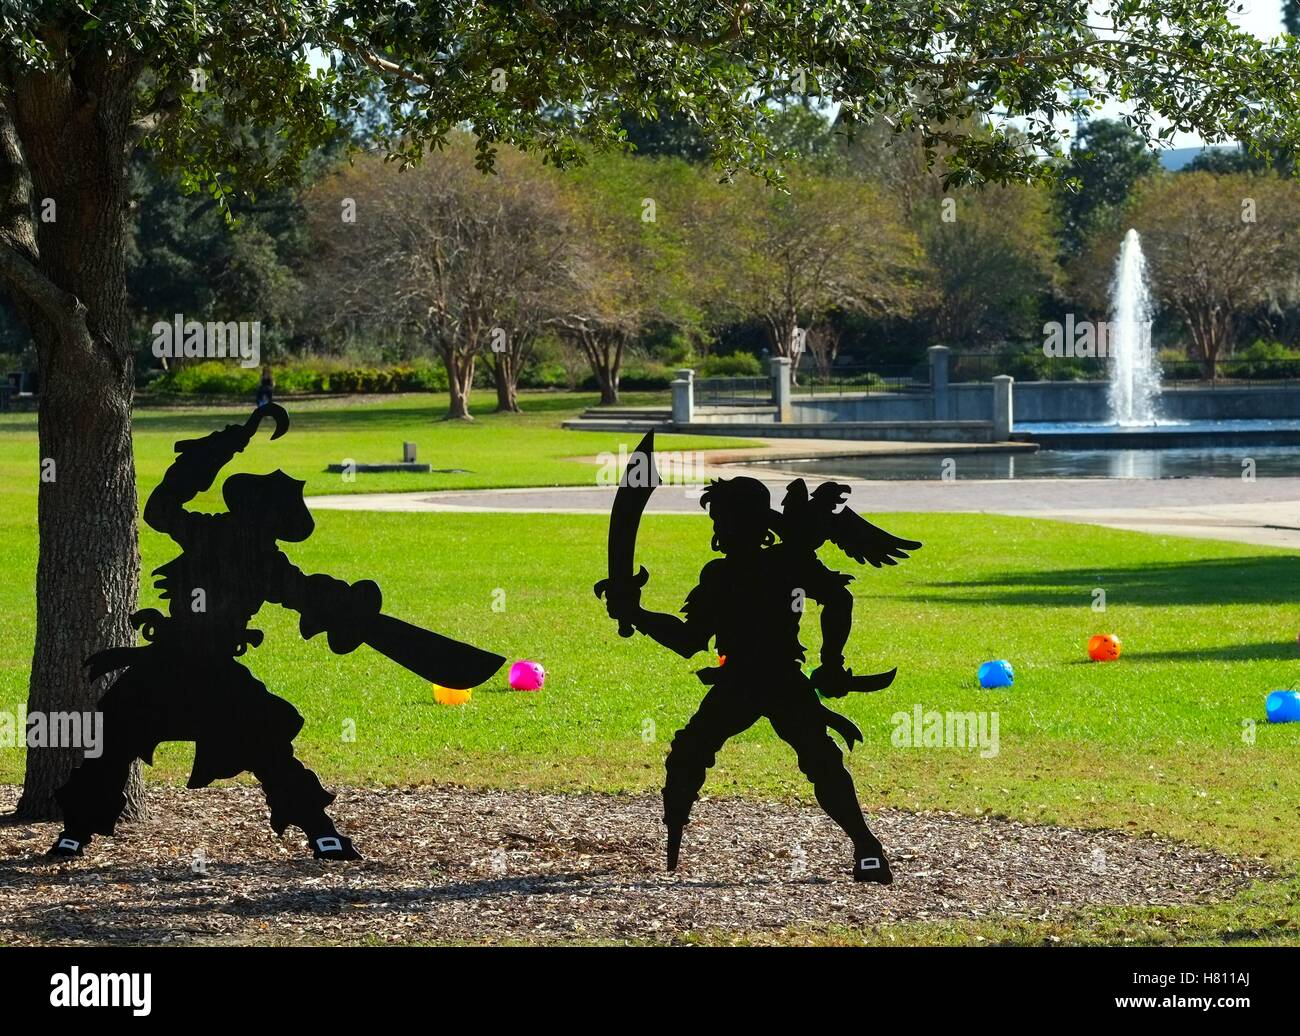 Cutouts of Pirates Fighting - Stock Image